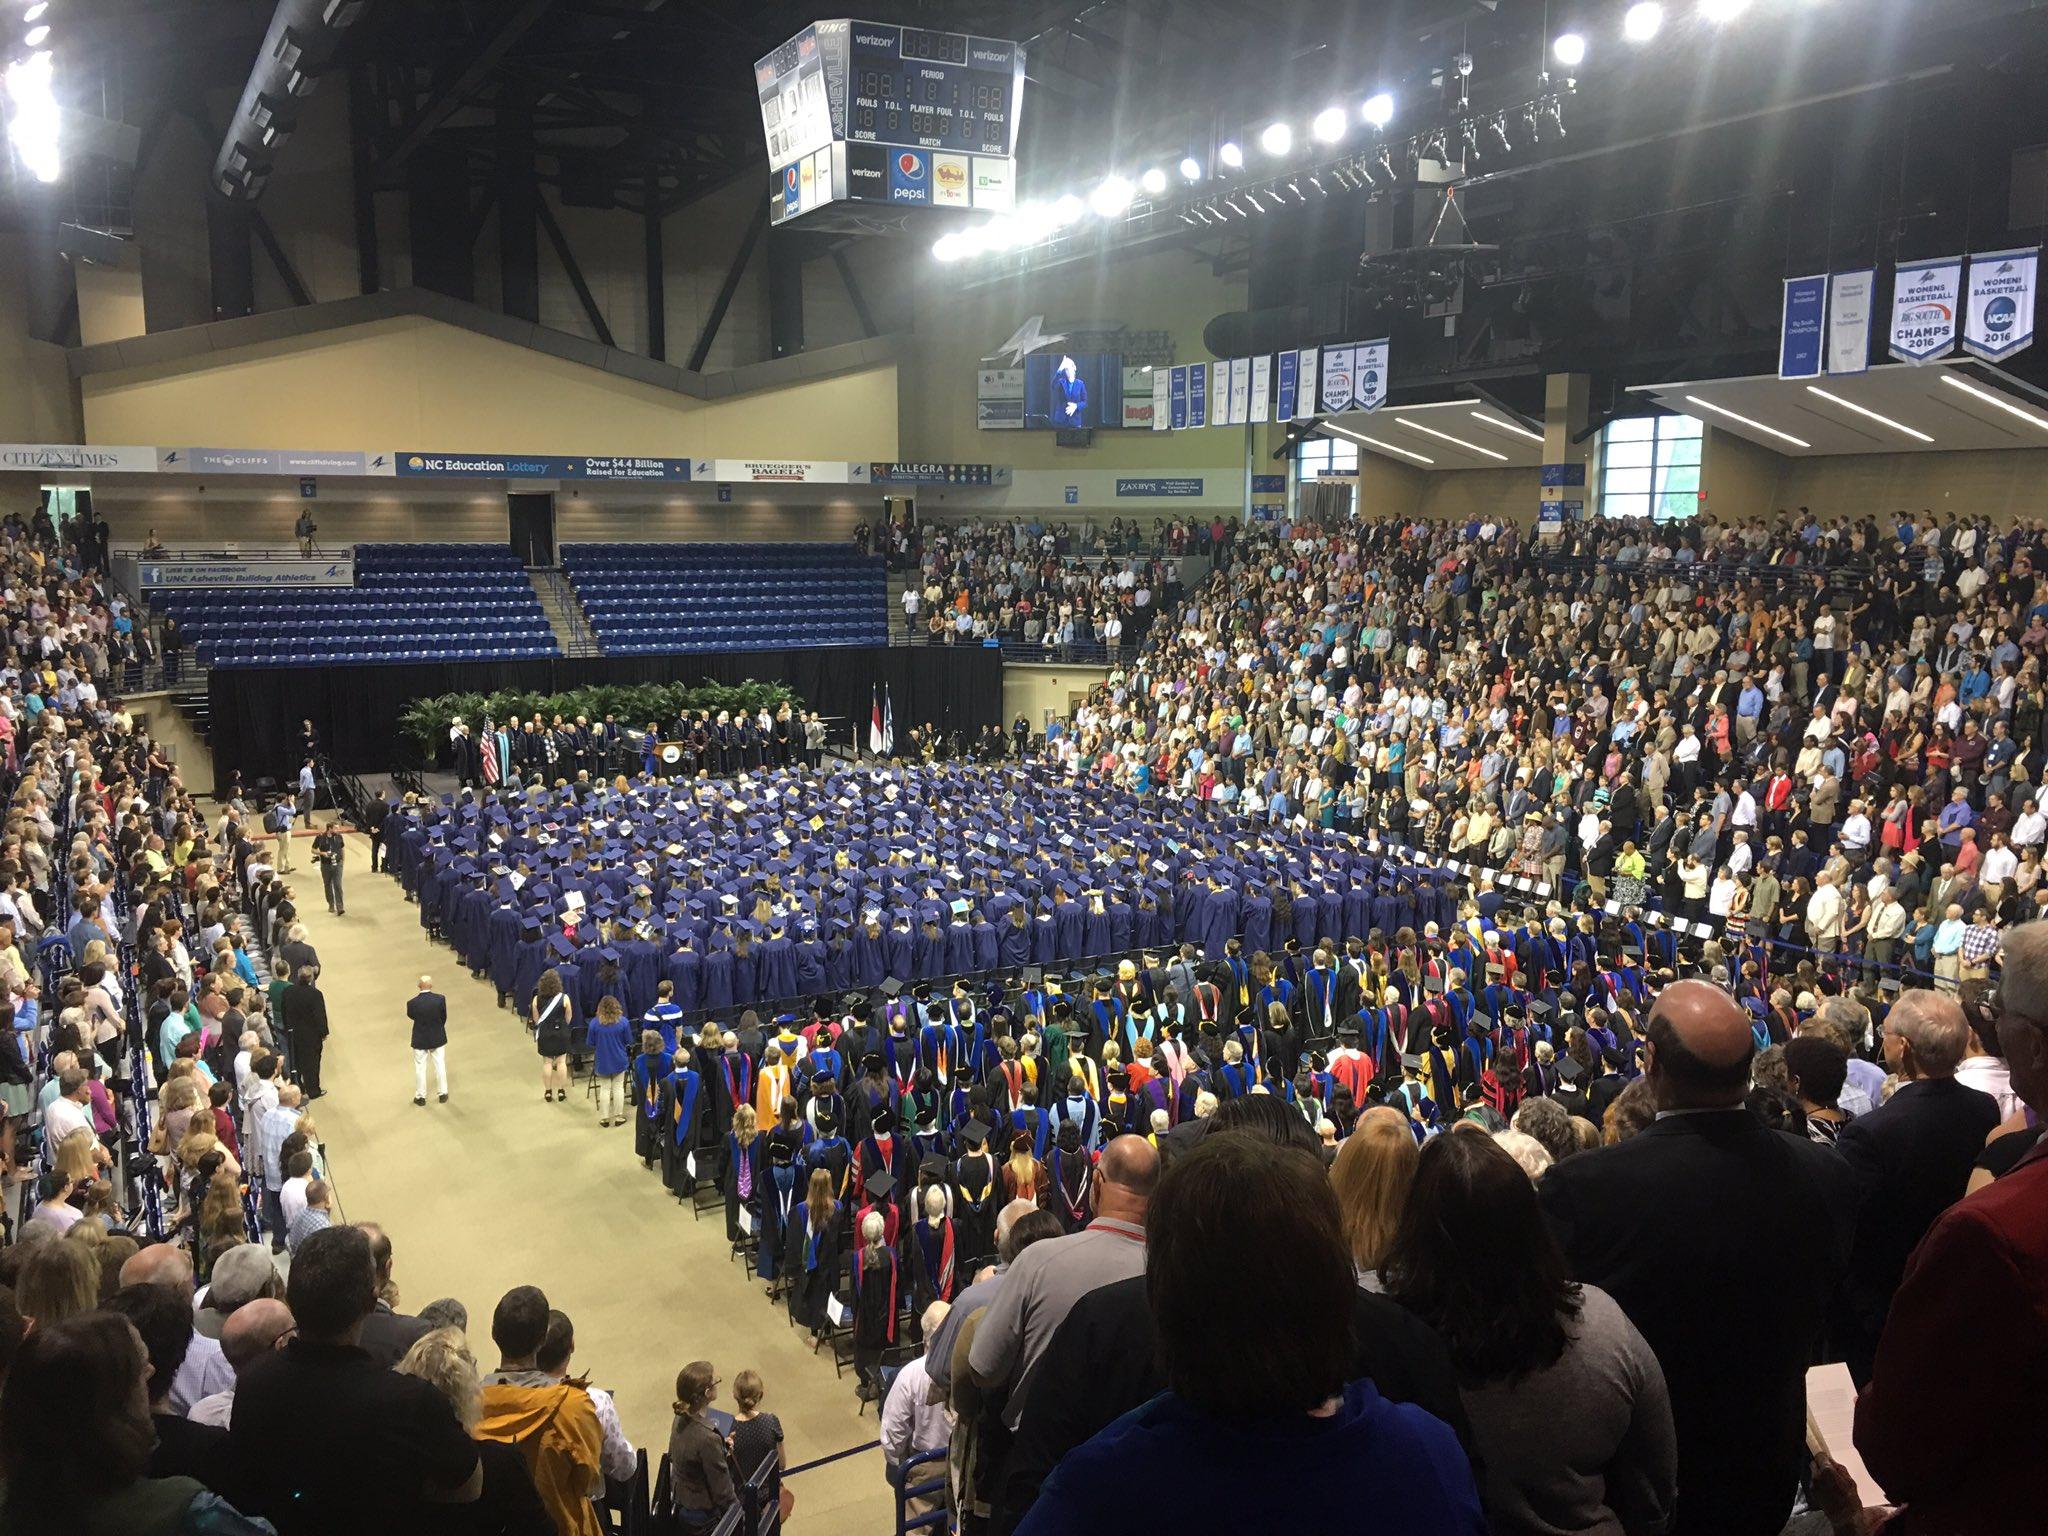 This is what #ThePursuit is all about. We could not be prouder of our 35 @ashevilledogs @UncAvl graduates #NCAAGrads #uncavl2017 https://t.co/TRN876StRm